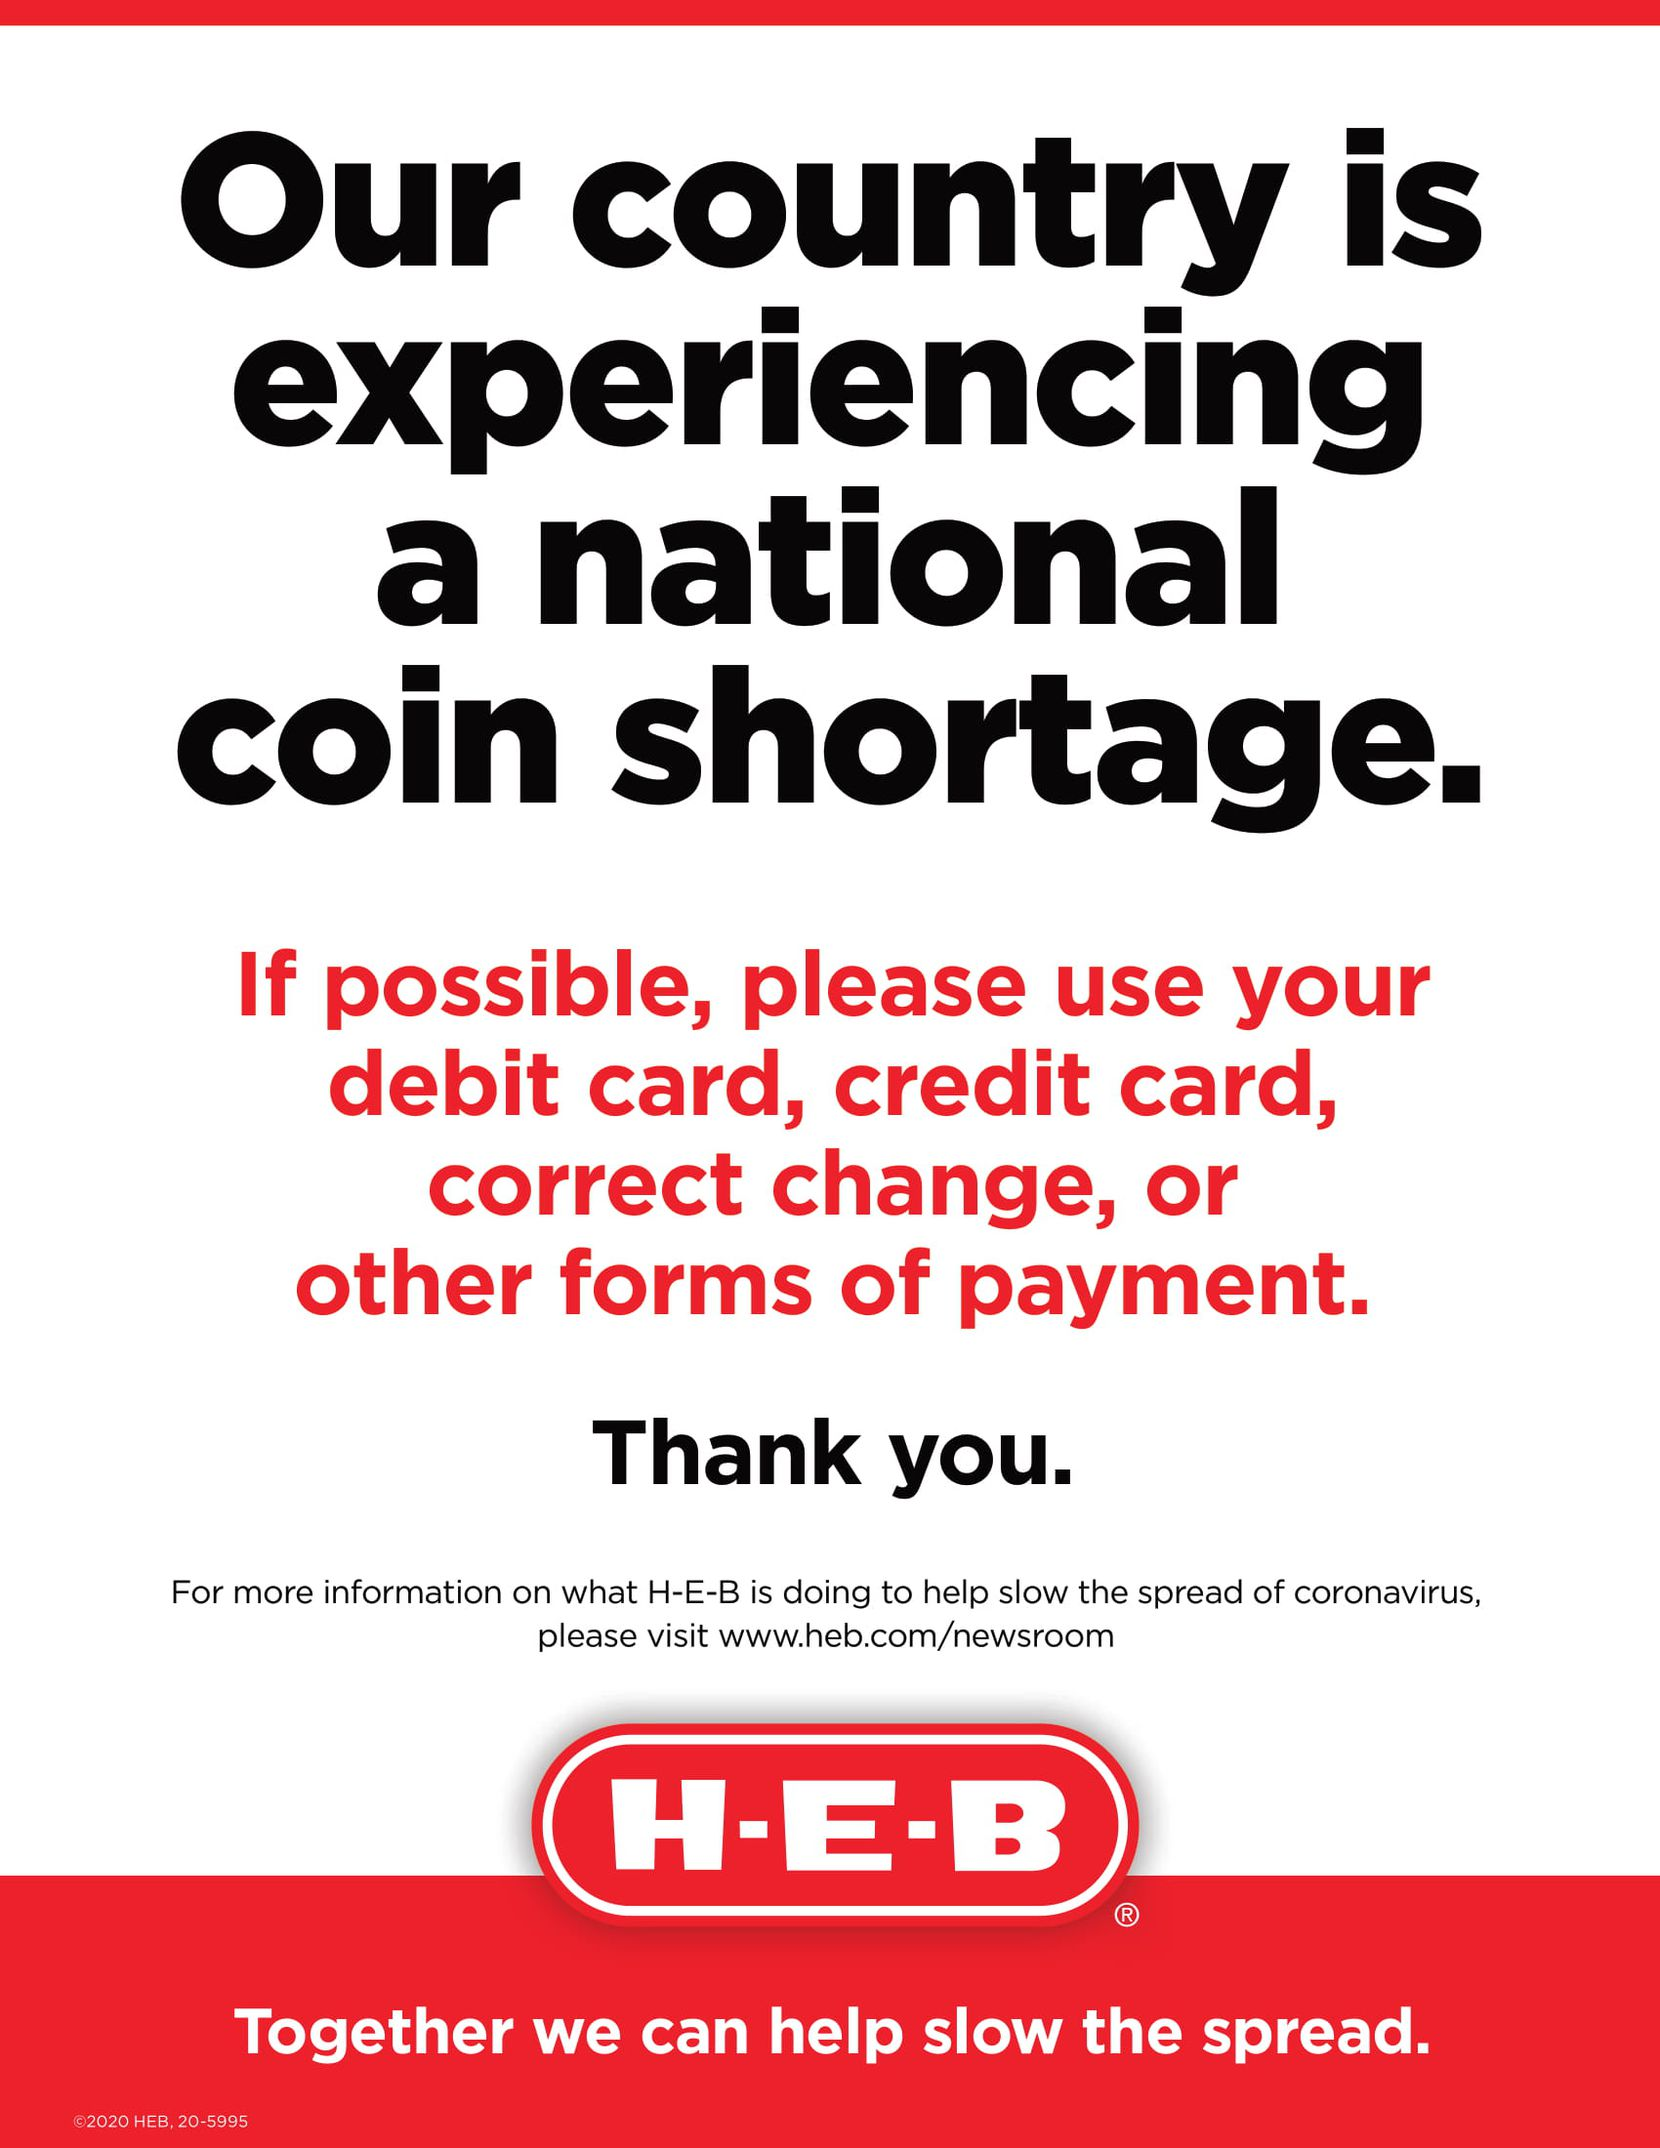 San Antonio-based grocer H-E-B put signs up at its locations to let customers know about the national coin shortage.